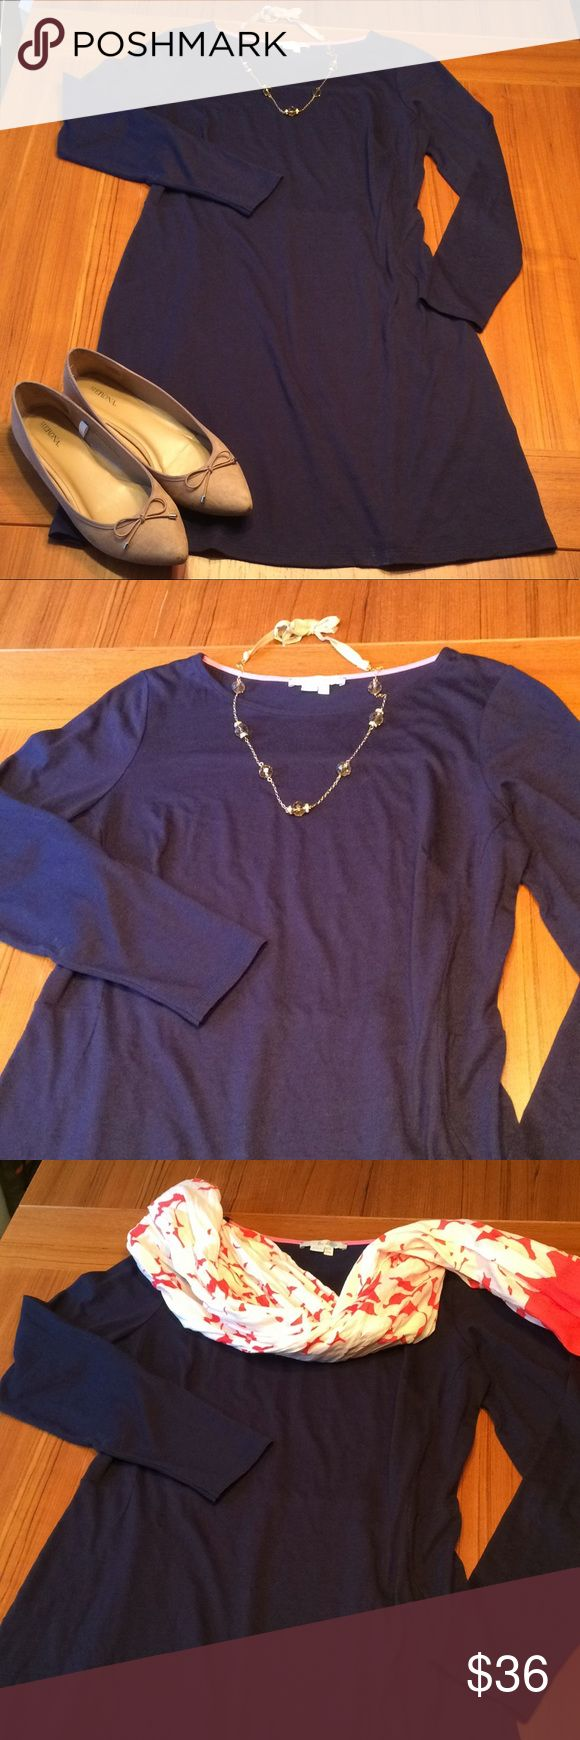 "Boden navy blue long sleeved dress size 10 EUC Beautiful blue dress with long sleeves. Excellent Boden quality. Lightweight. Can be dressed up for work or casual for the weekend. Size 10. 50% cotton 50% modal 35"" shoulder to hem. Boden Dresses Long Sleeve"